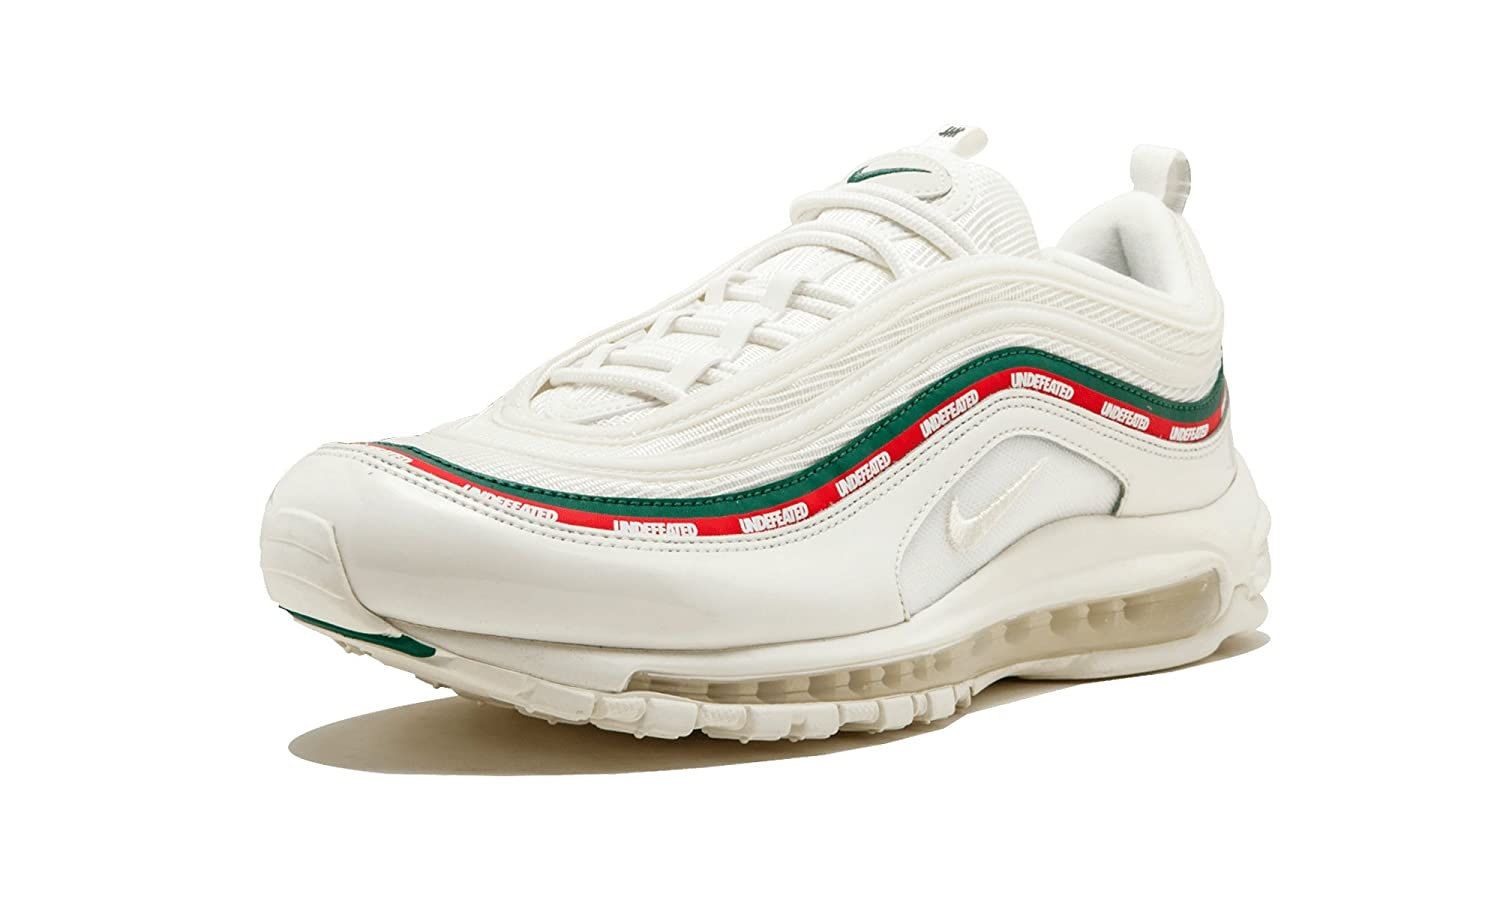 95d829a849 Amazon.com | Nike AIR MAX 97 OG/Undftd 'Undefeated' - AJ1986-100 | Running